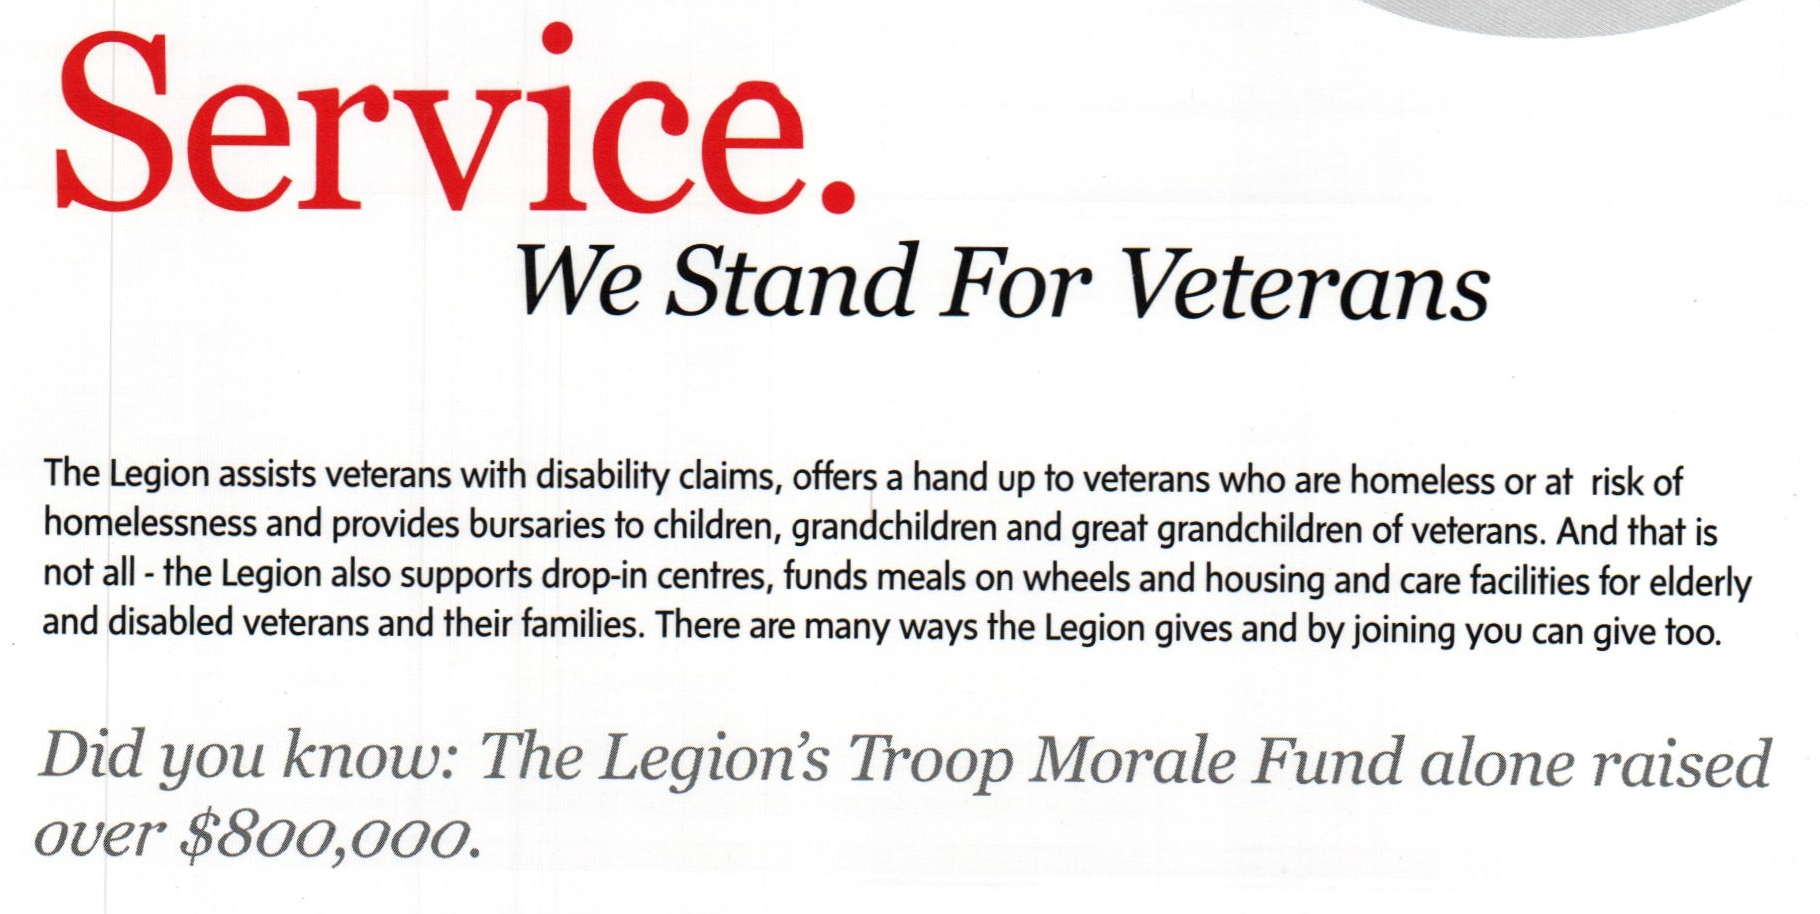 Contact - The Claims - ofers a hand up to veterans